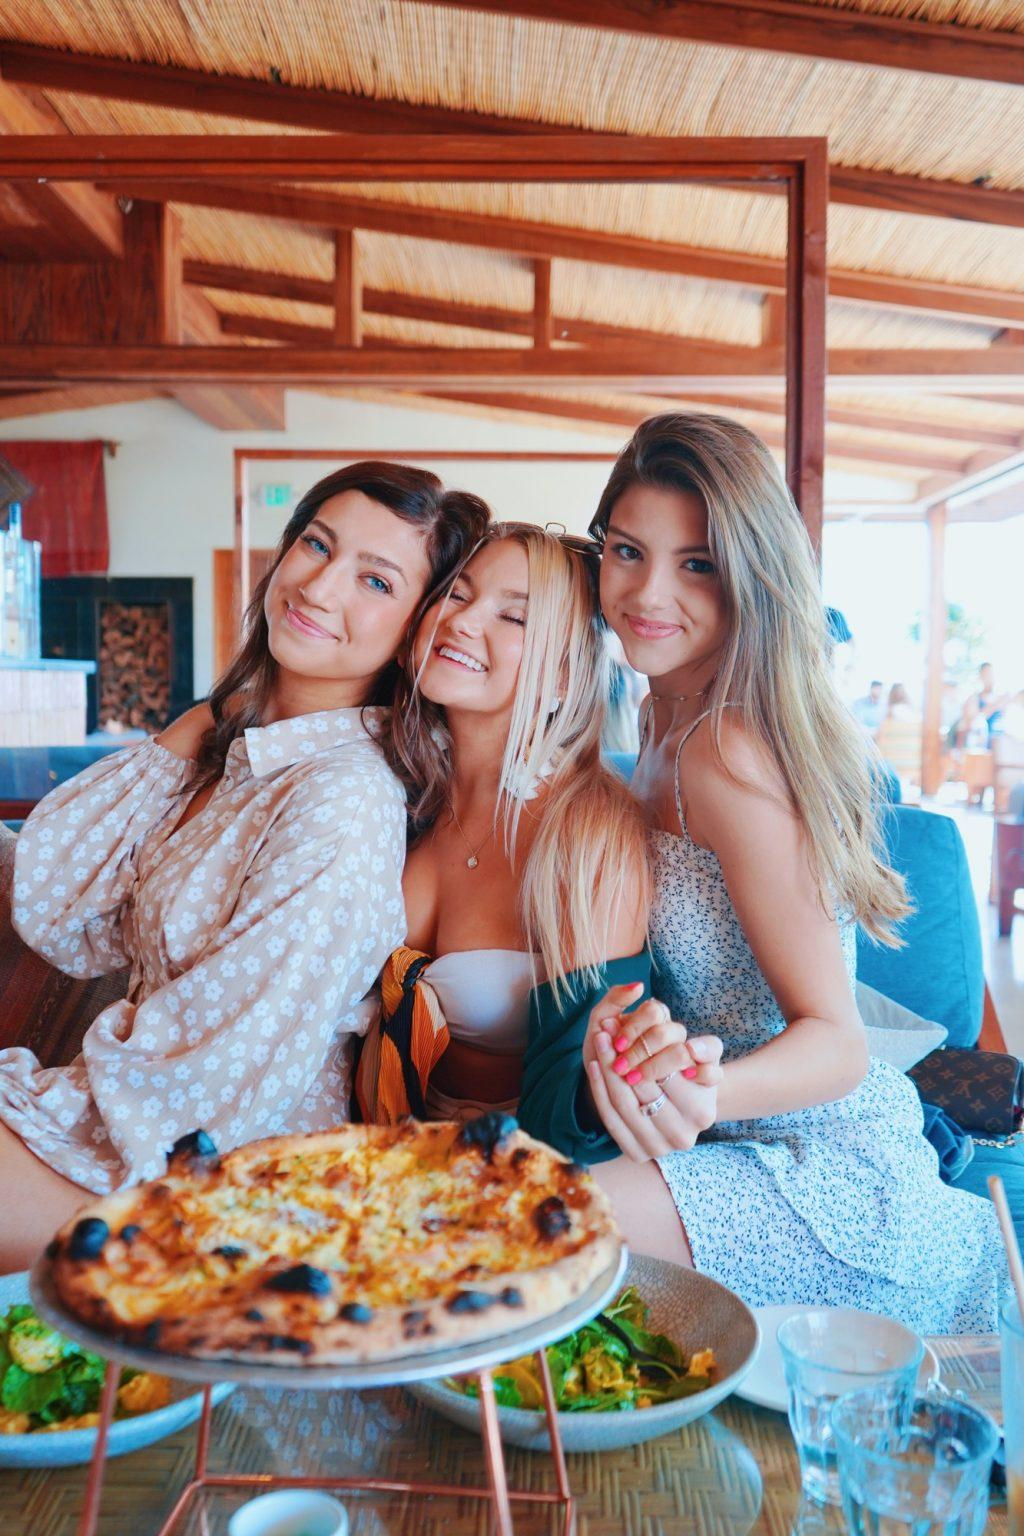 Morris (right) enjoys lunch at Élephante in Santa Monica, Calif., in September with her sisters in Kappa Kappa Gamma, Lauren Graney (left) and Michele Marvin (middle). Morris said her favorite dish is whipped eggplant and avocado toast.